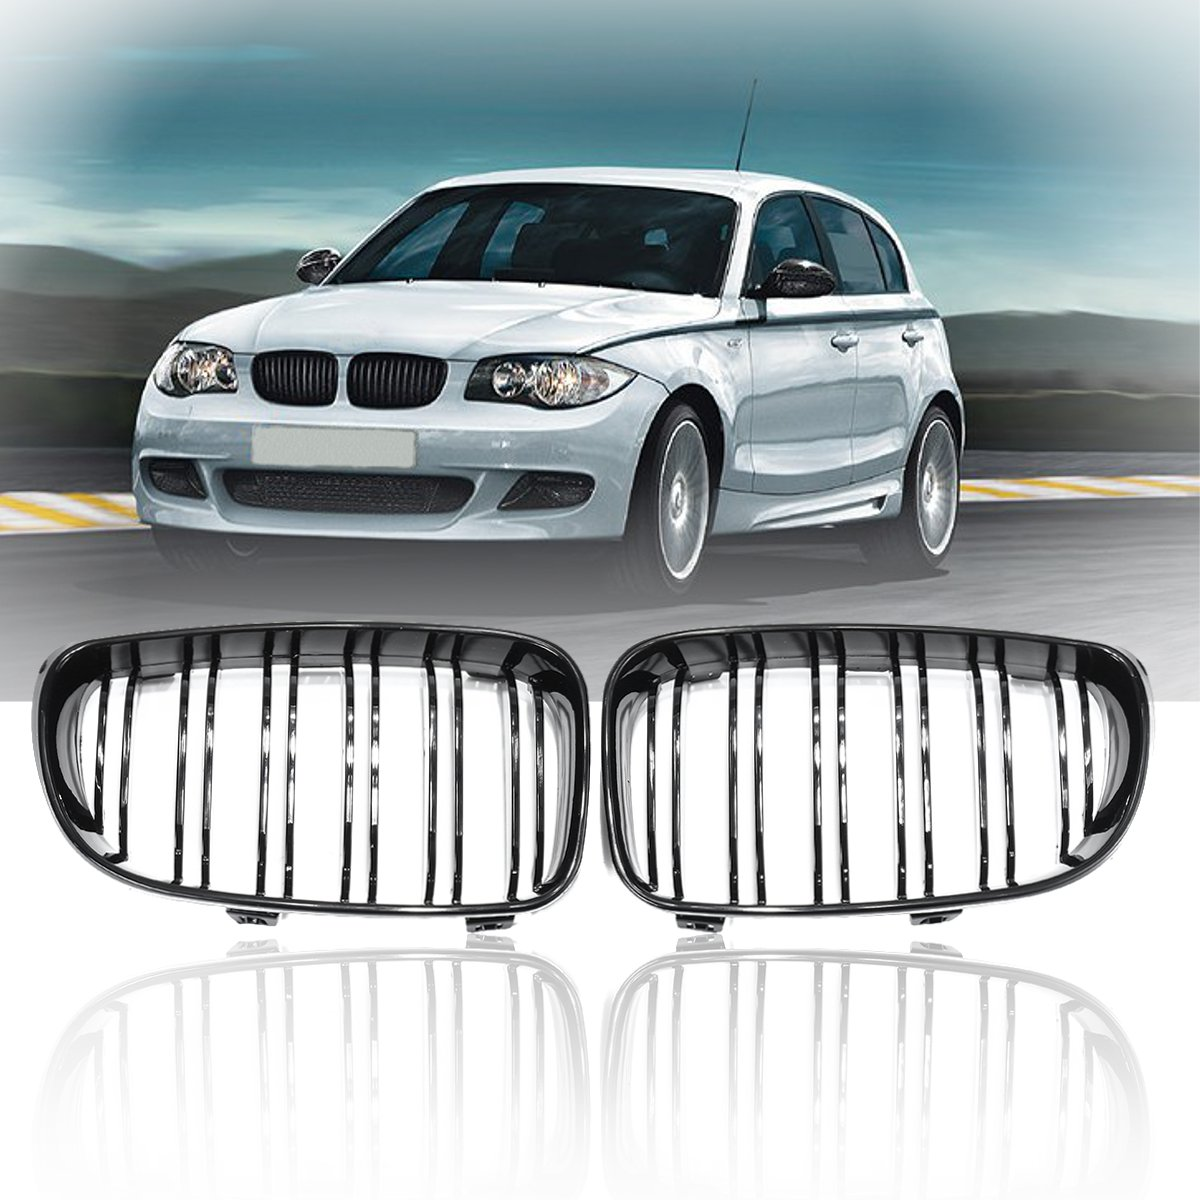 Pair New Gloss Black 2 Double Slat Line Front Kidney Racing Grill Grille For BMW E87 1 Series 2008 2009 2010 2011 2012 2013Pair New Gloss Black 2 Double Slat Line Front Kidney Racing Grill Grille For BMW E87 1 Series 2008 2009 2010 2011 2012 2013